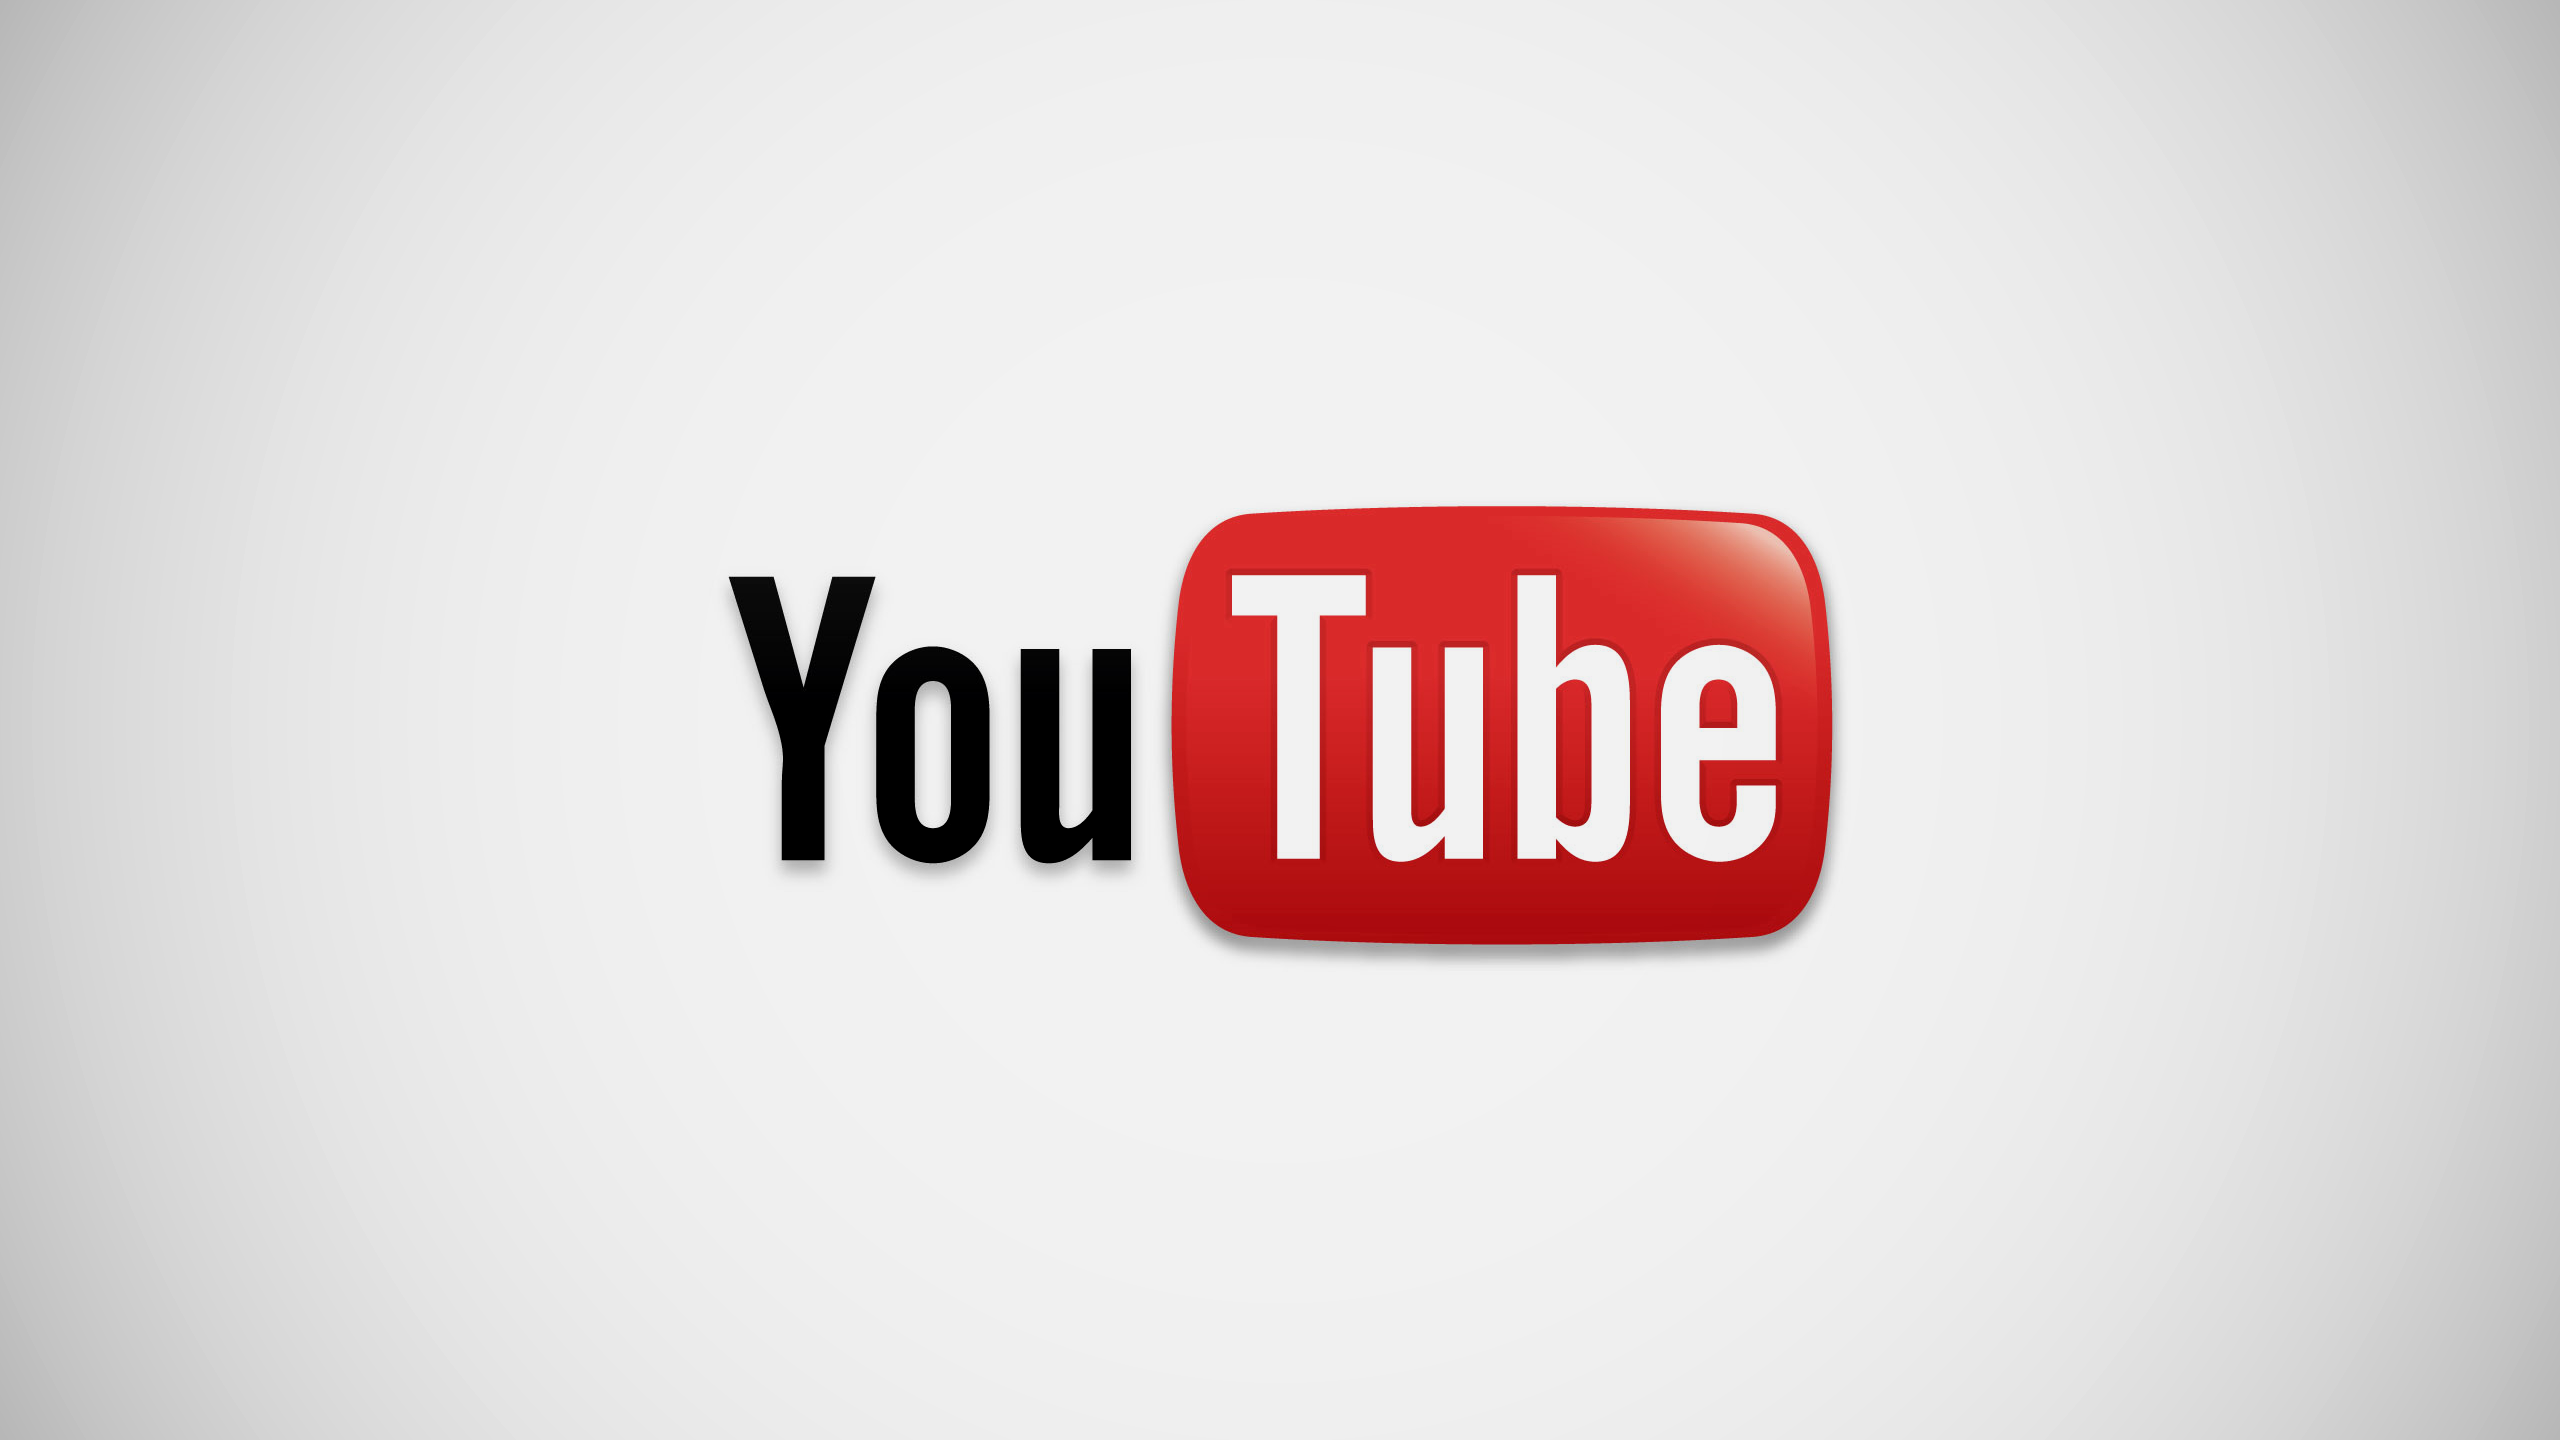 YouTube Logo Wallpapers.